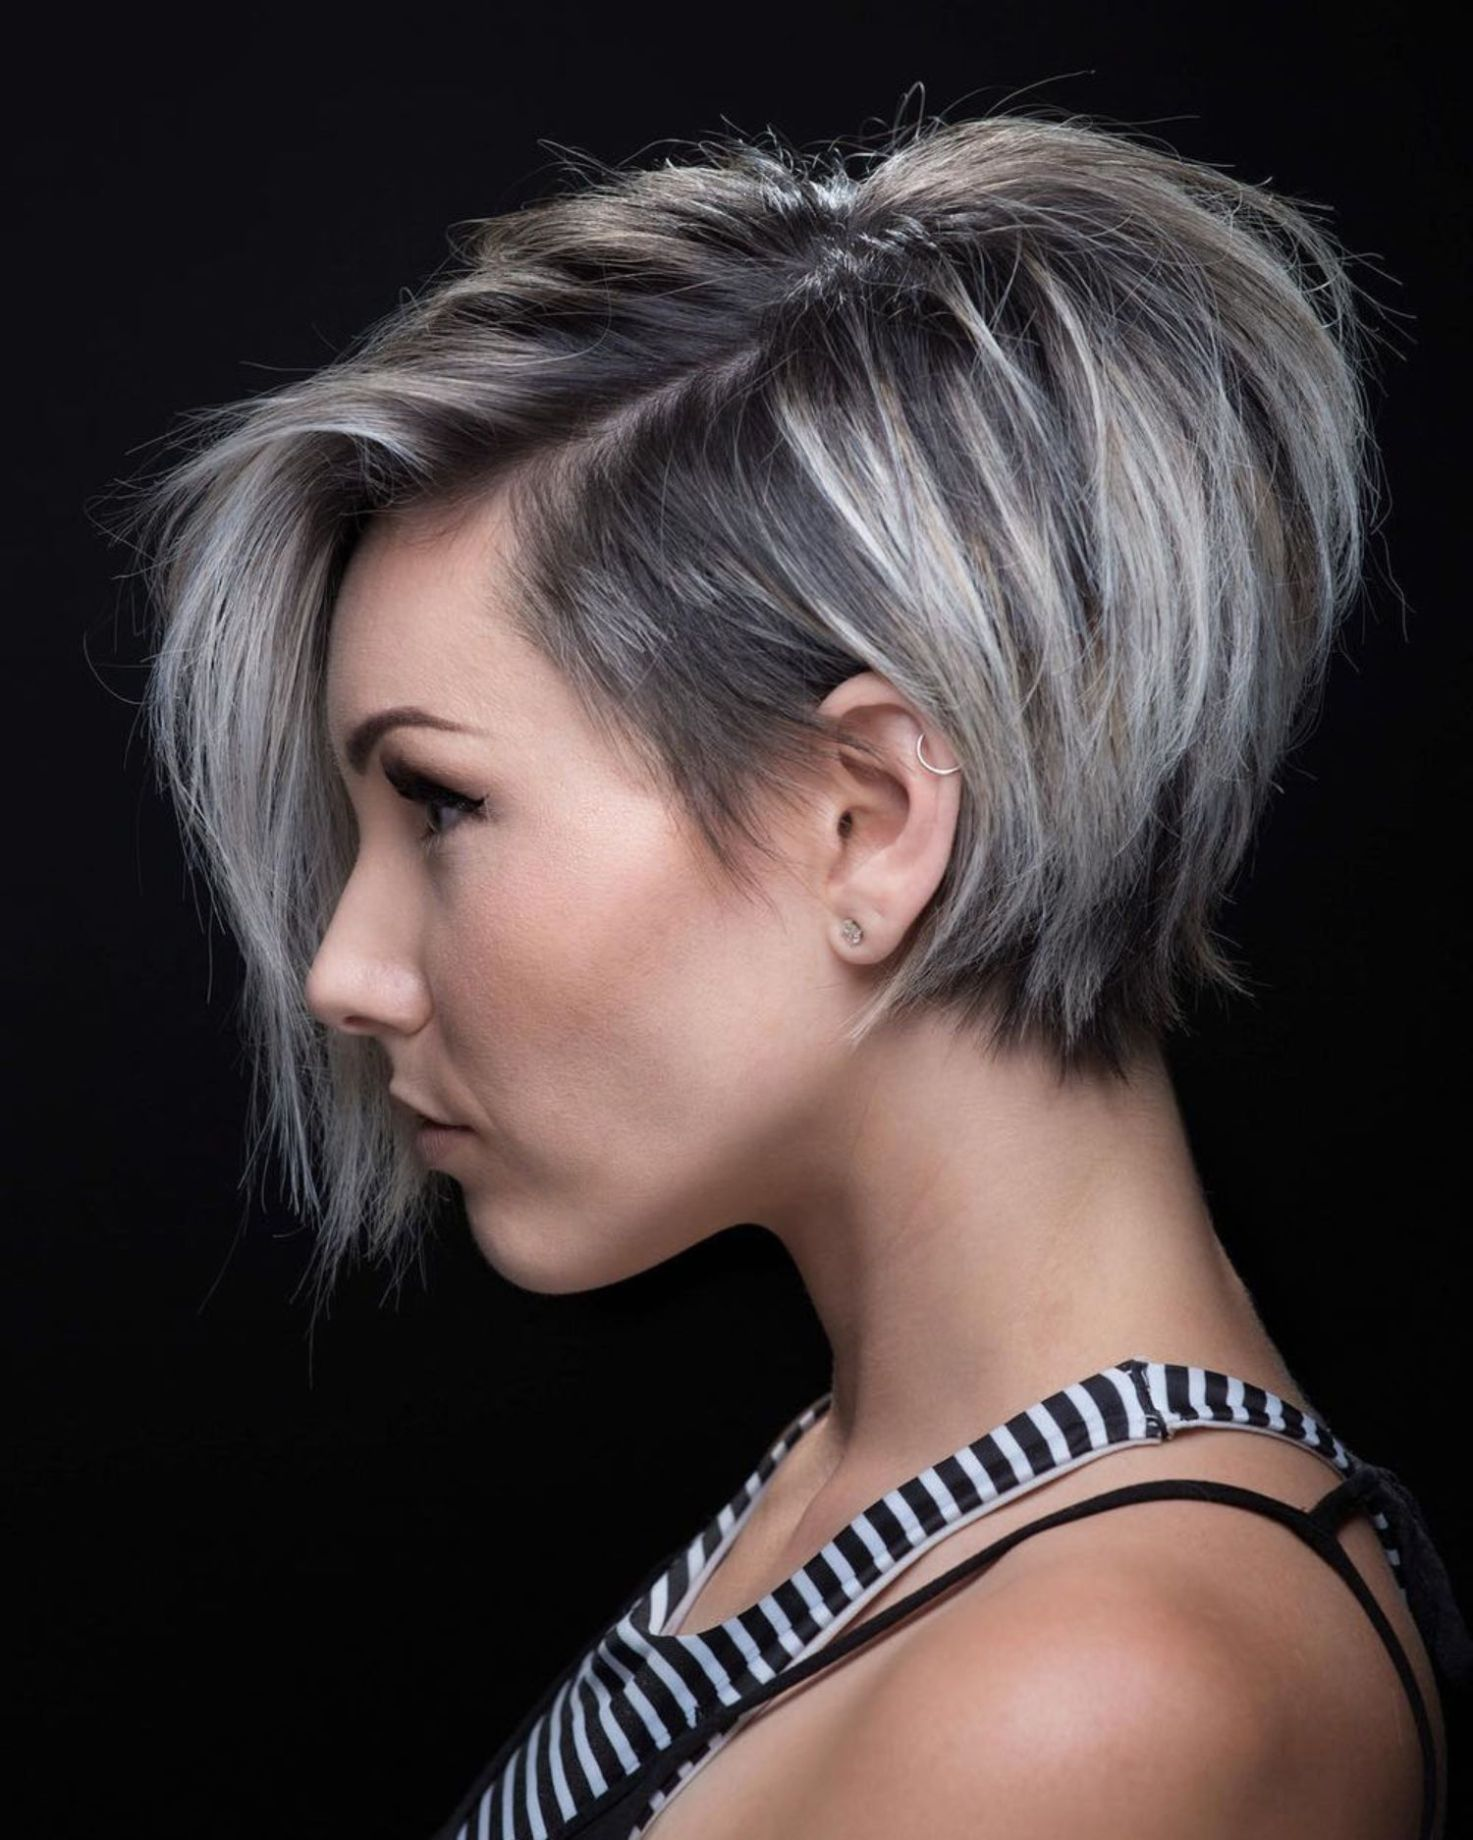 70 short shaggy, spiky, edgy pixie cuts and hairstyles in